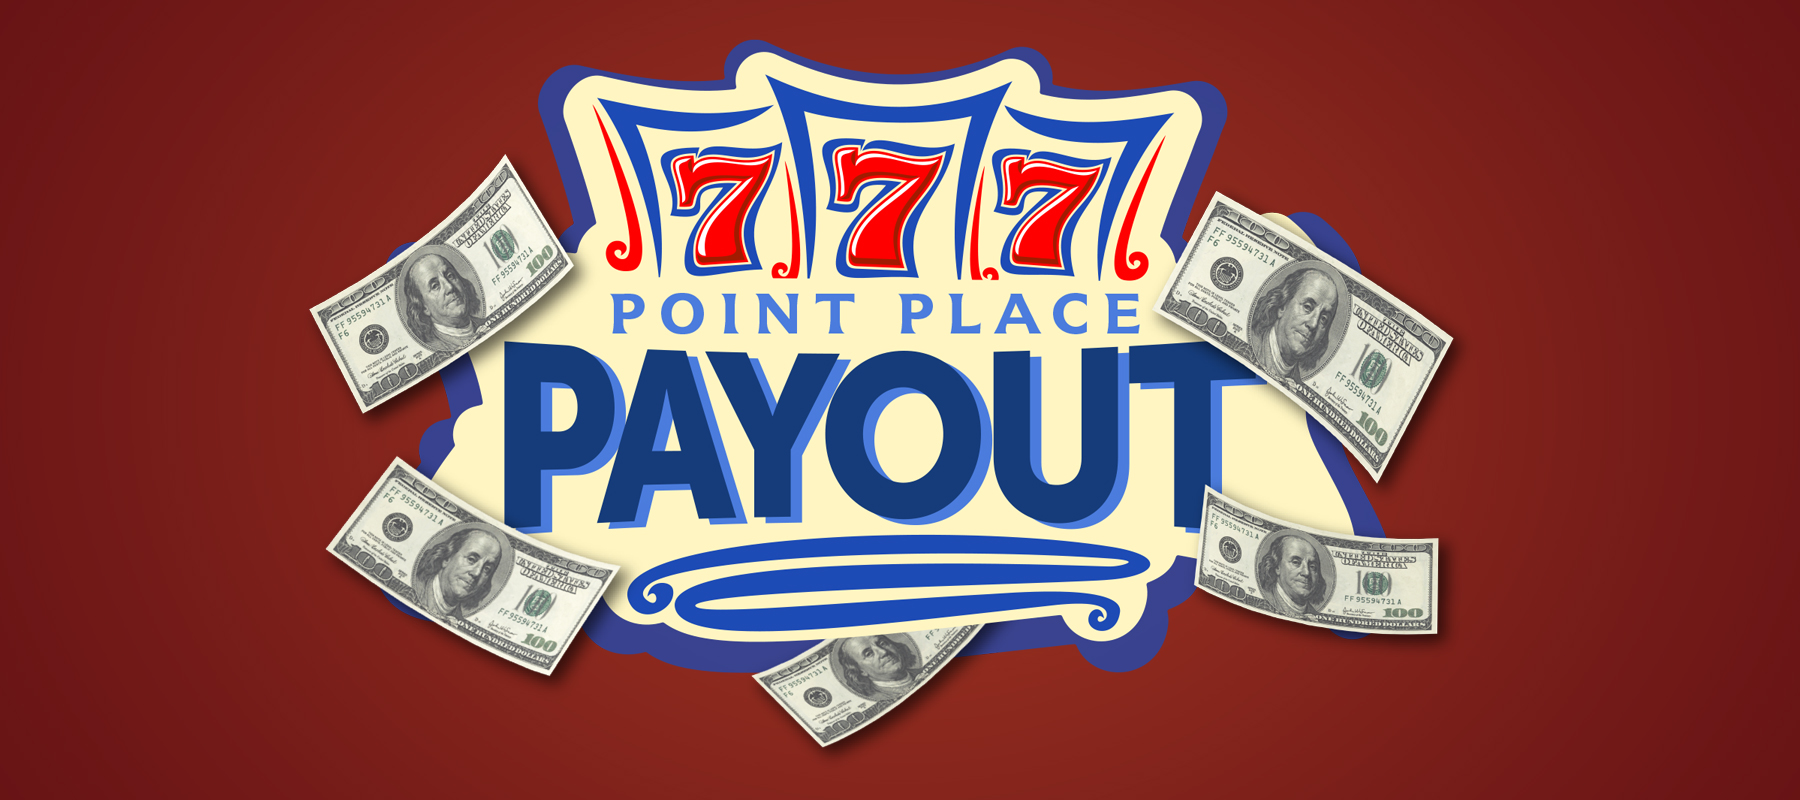 Point Place Payout